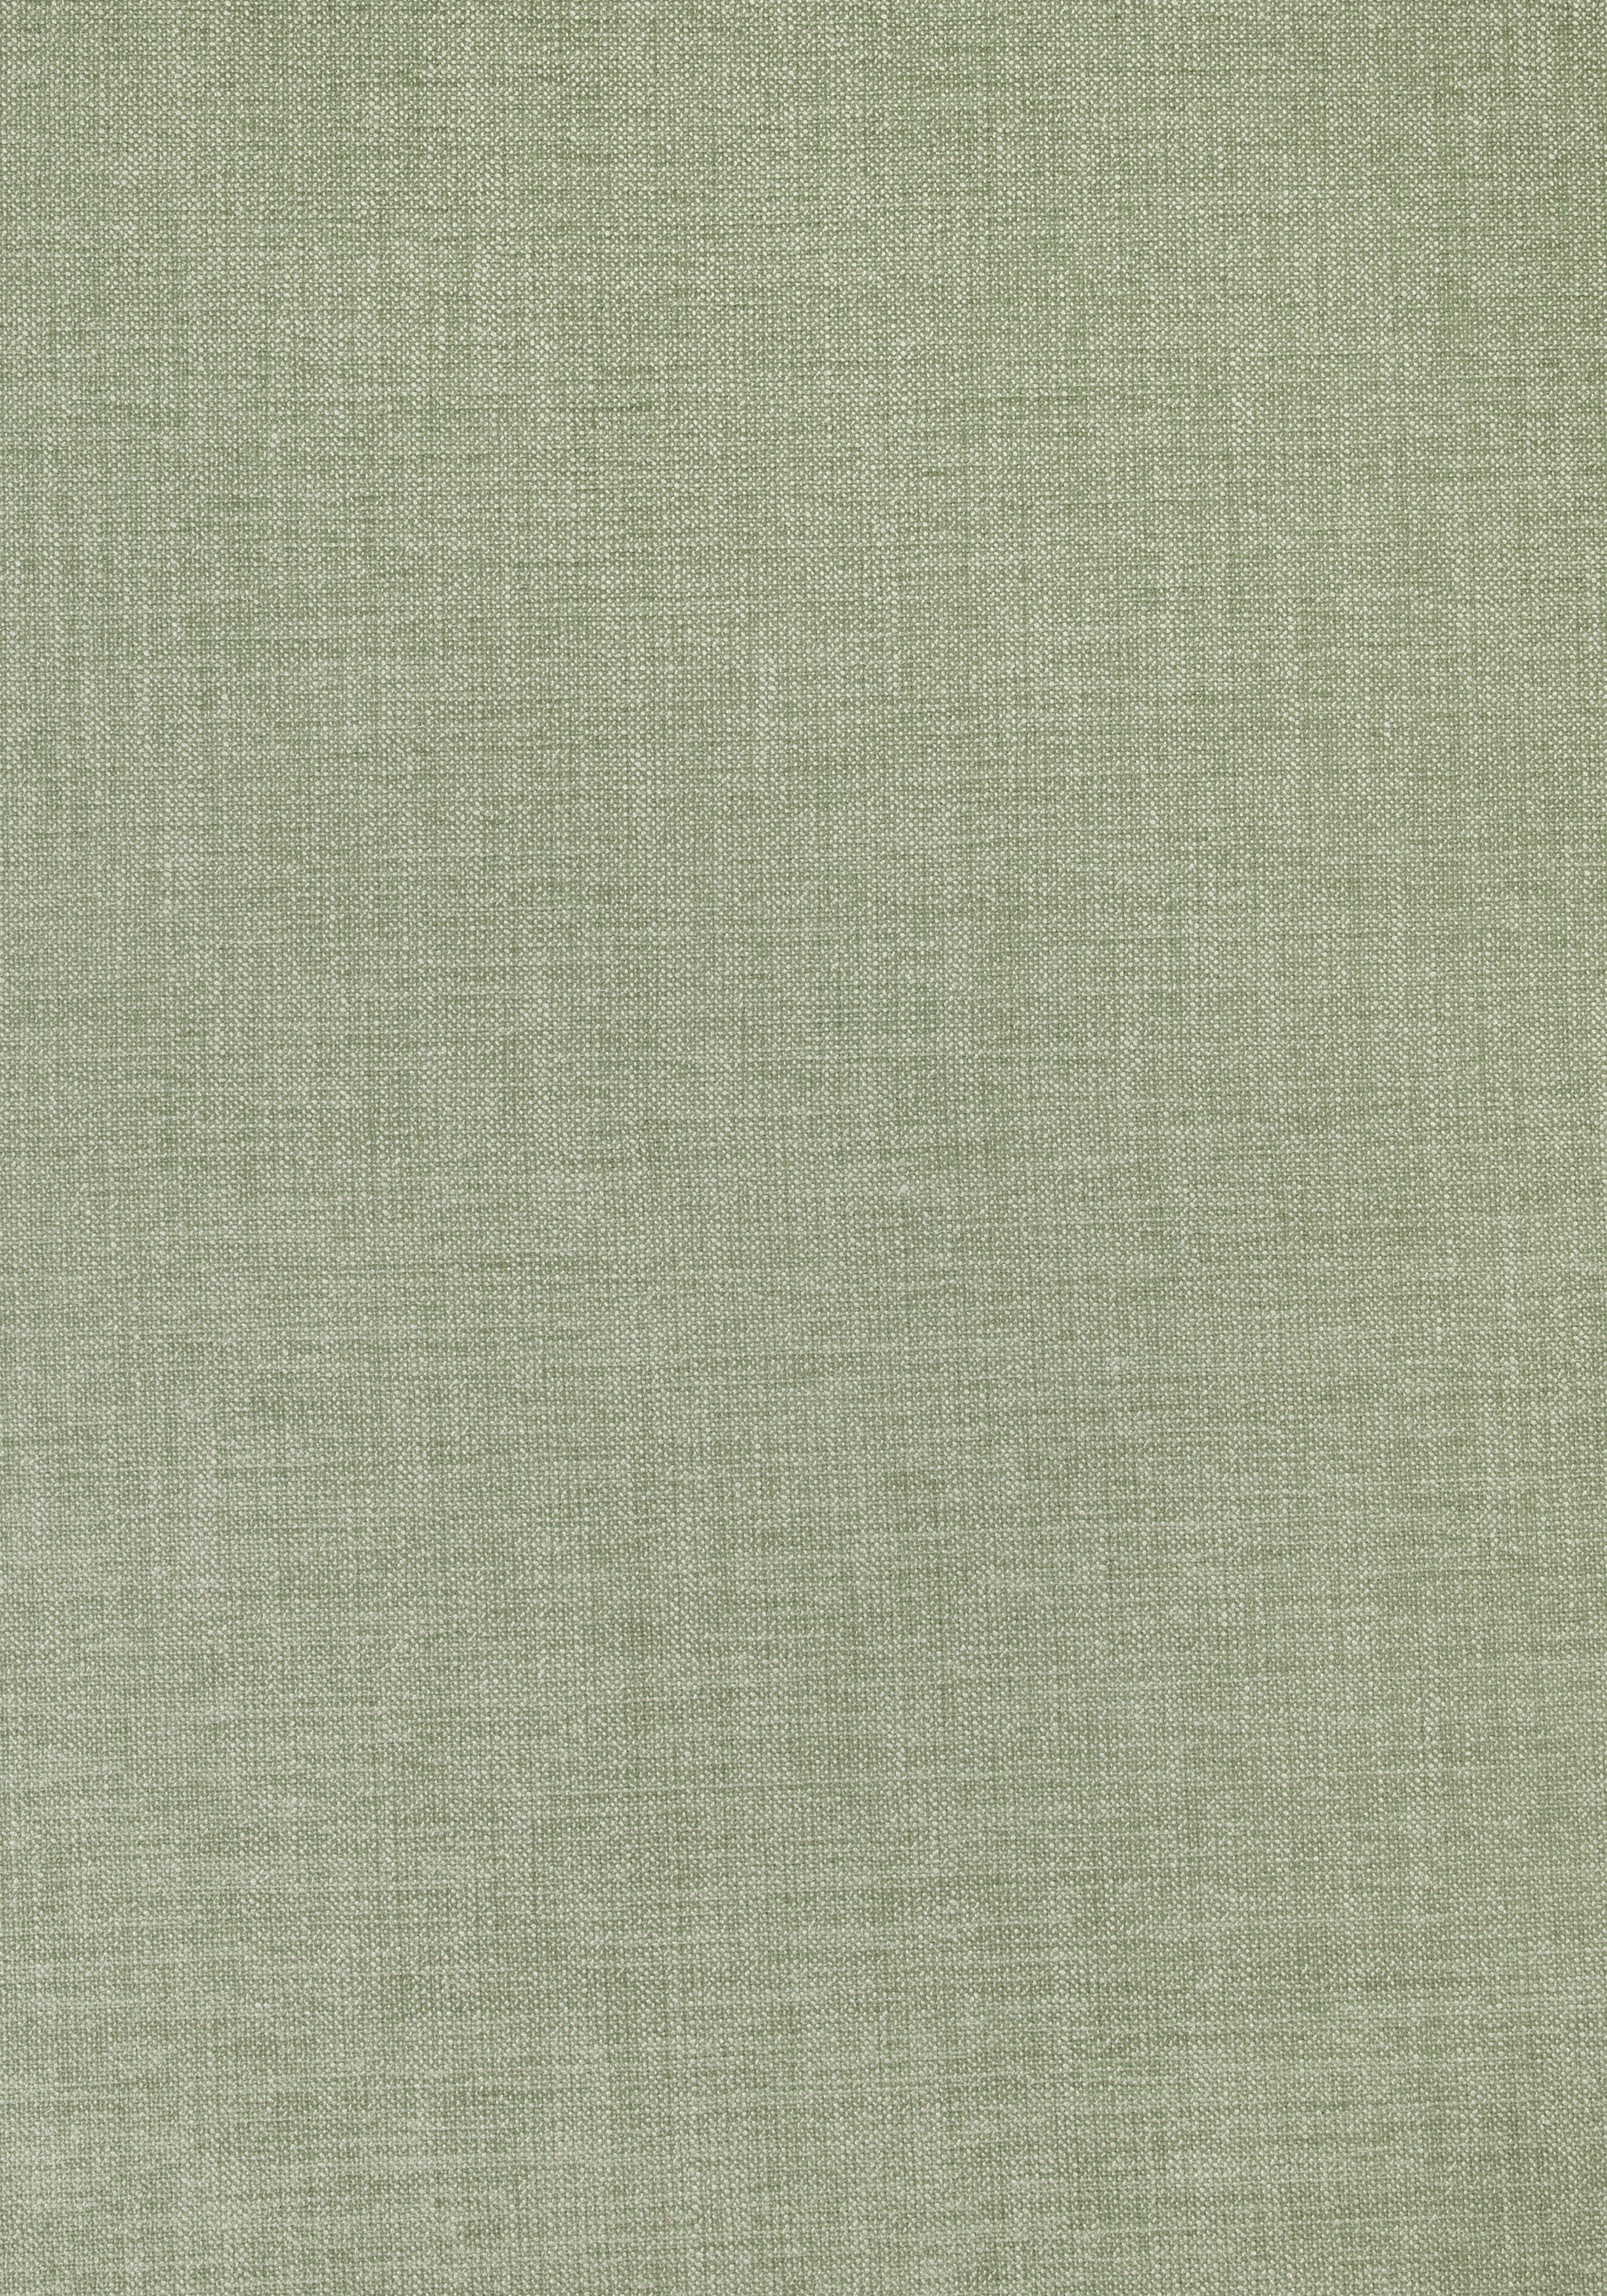 Luxe Weave, Sage, W724116, Collection Woven 8 Luxe Textures From